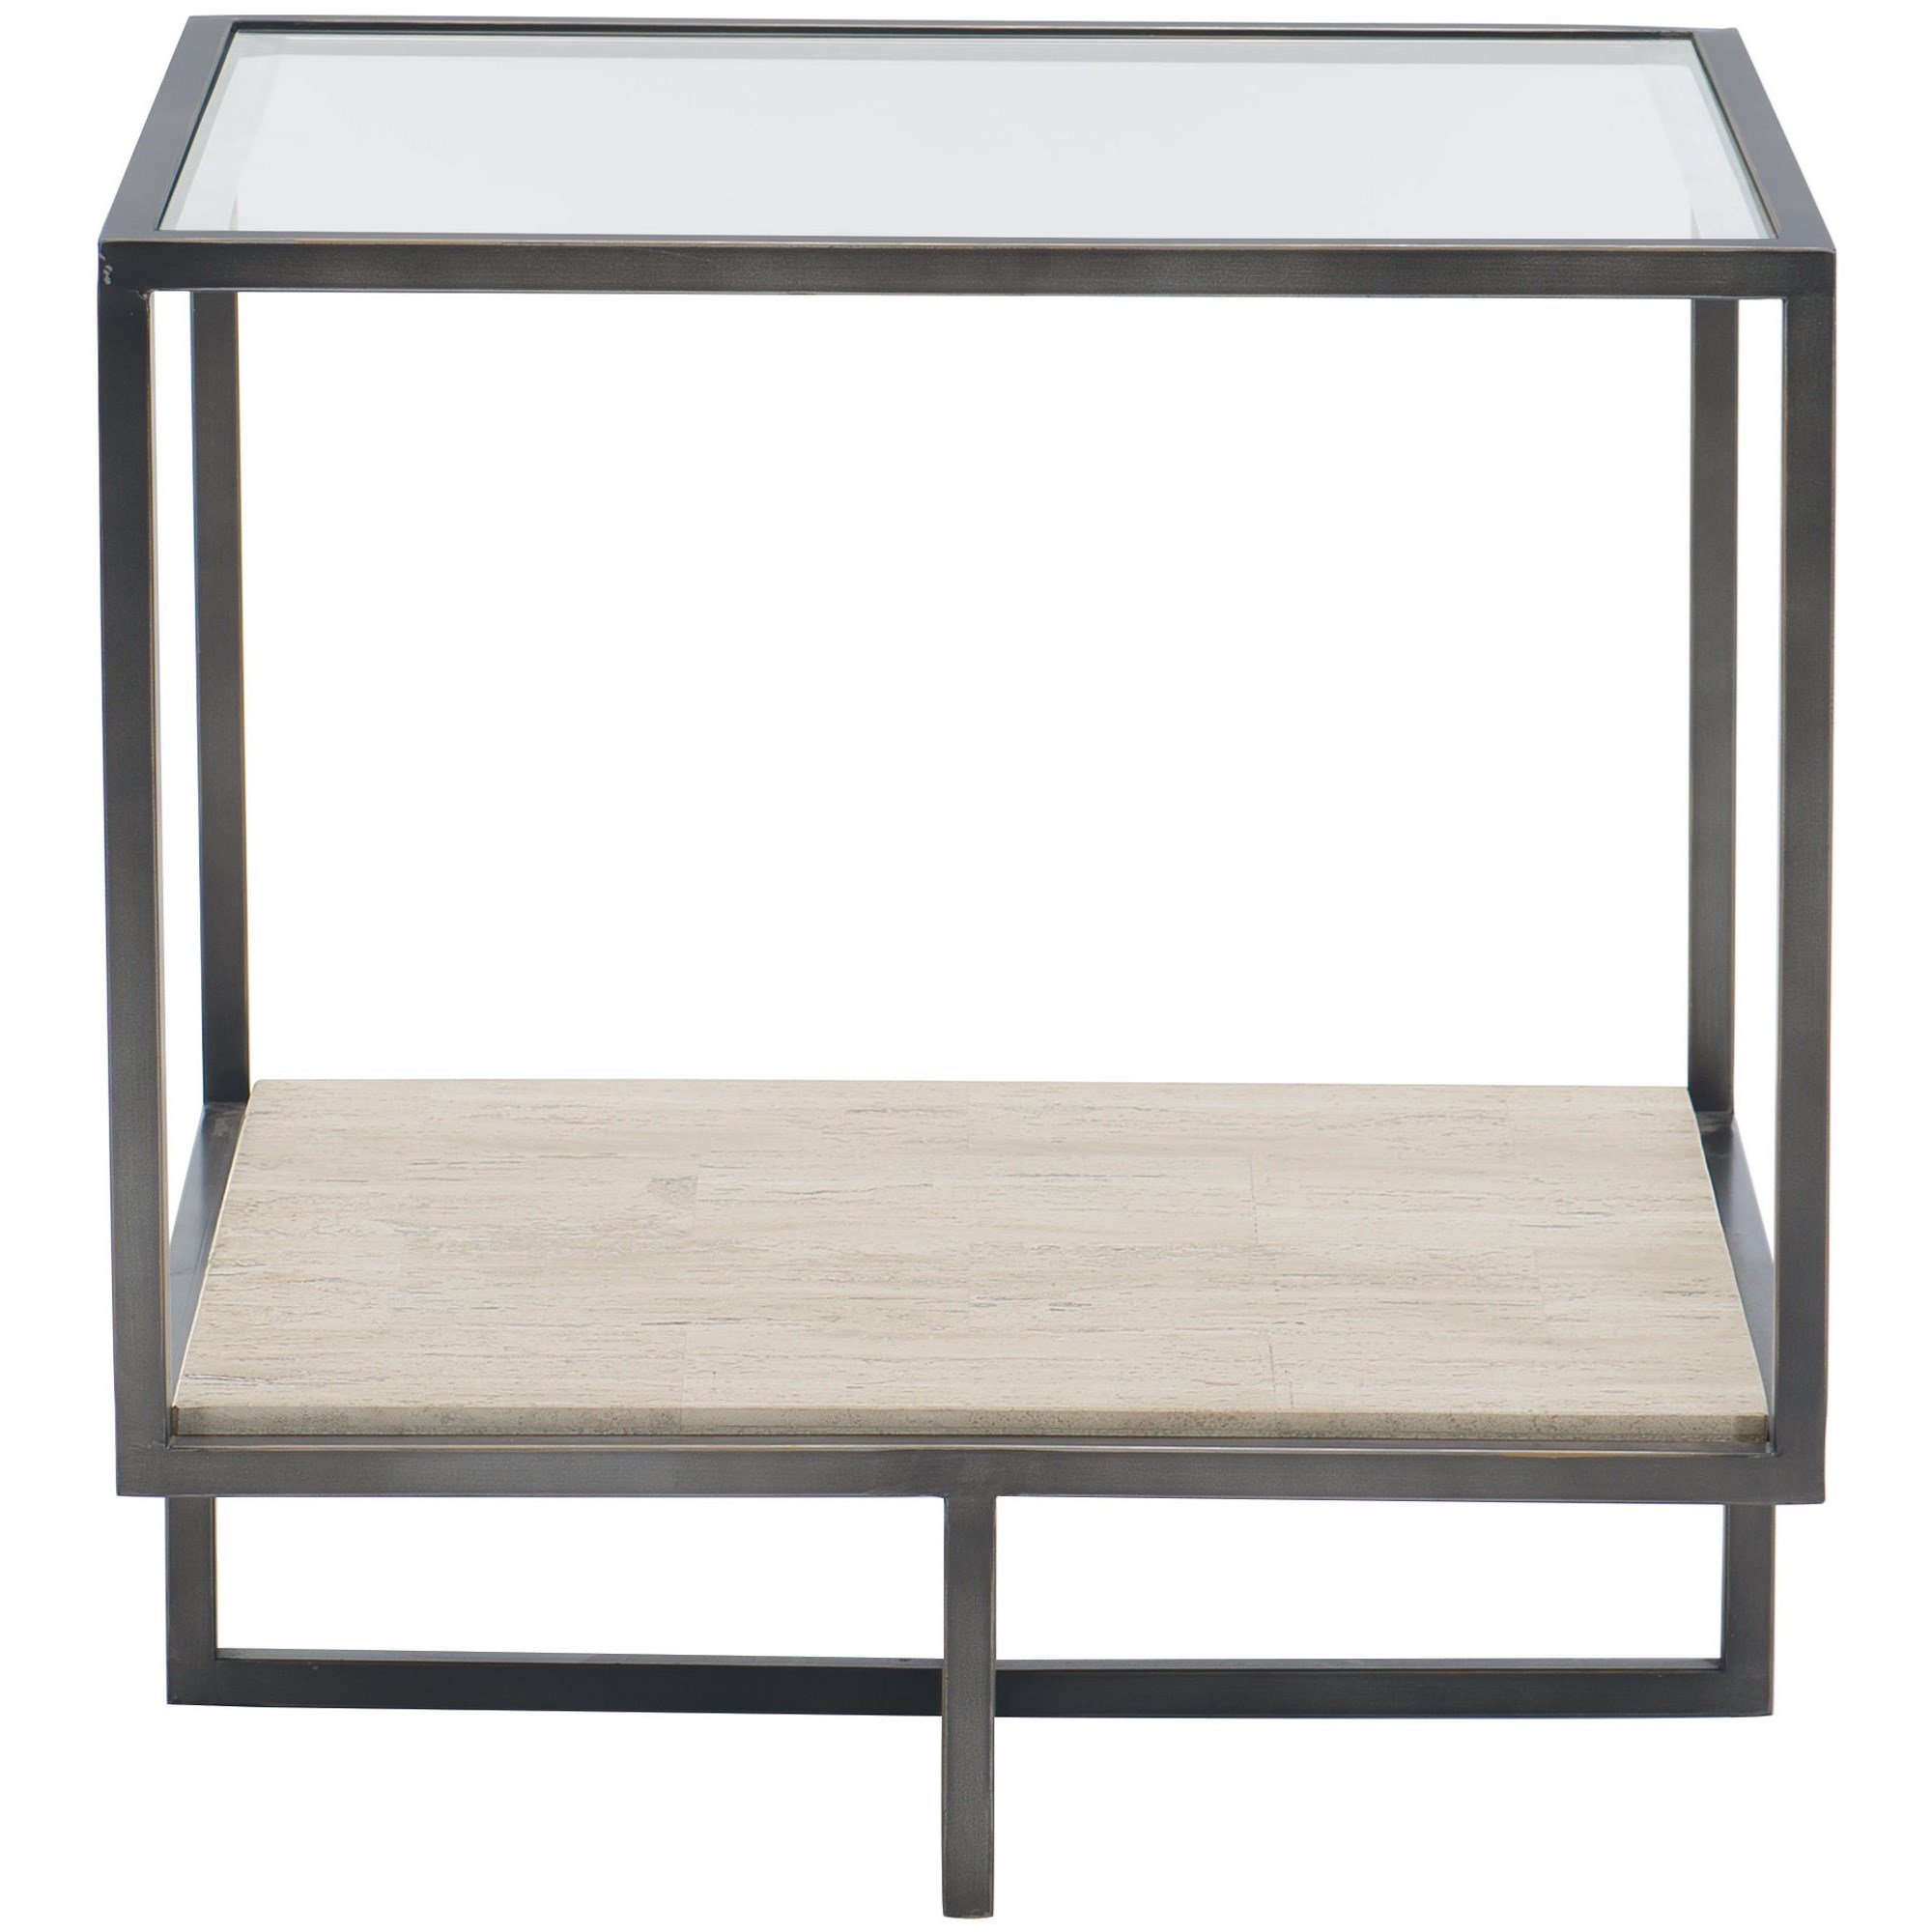 Harlow Metal Square End Table by Bernhardt at Darvin Furniture